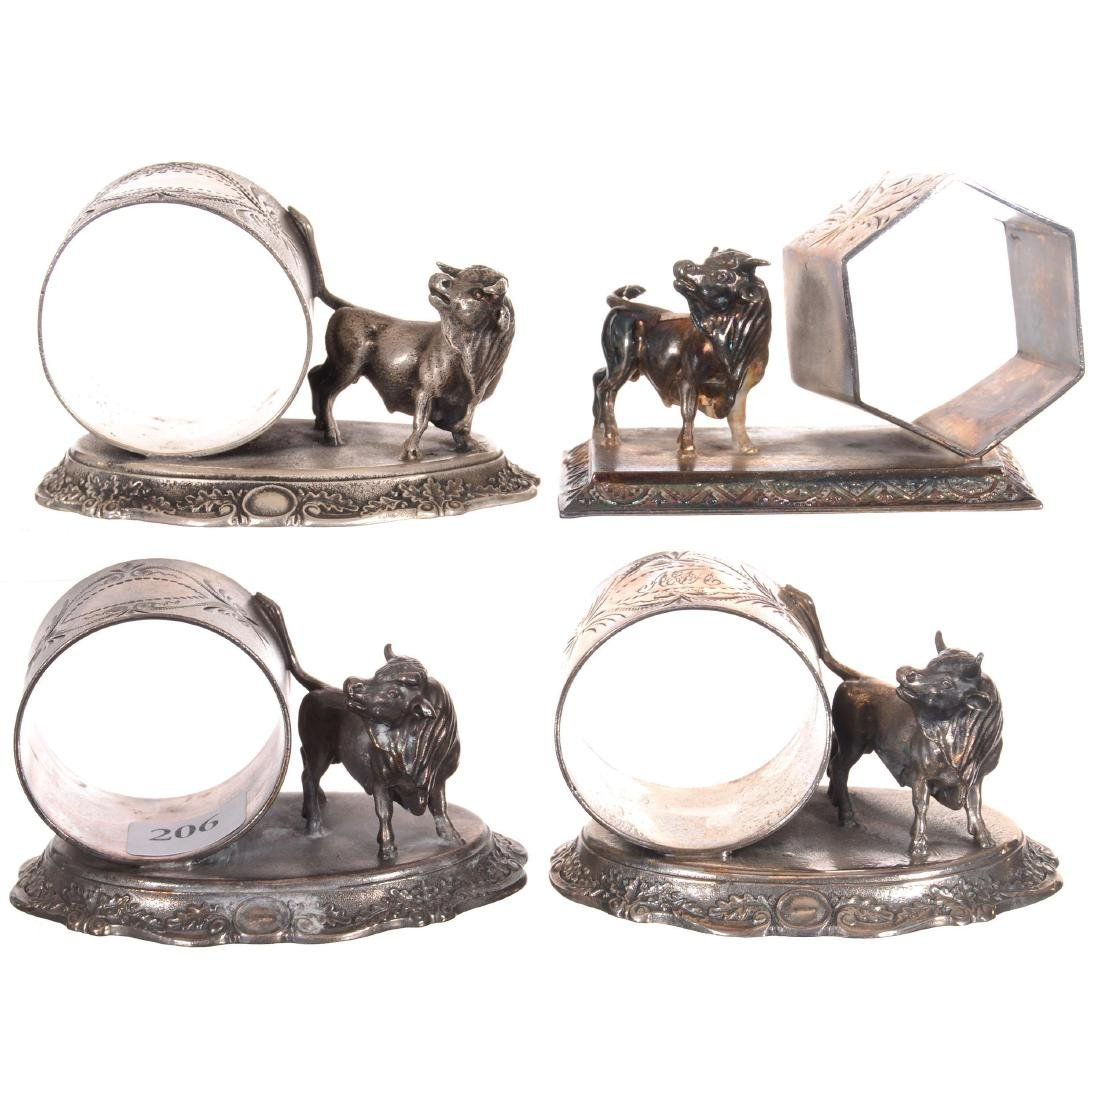 Four Figural Silver-plate Napkin Rings Featuring Bulls